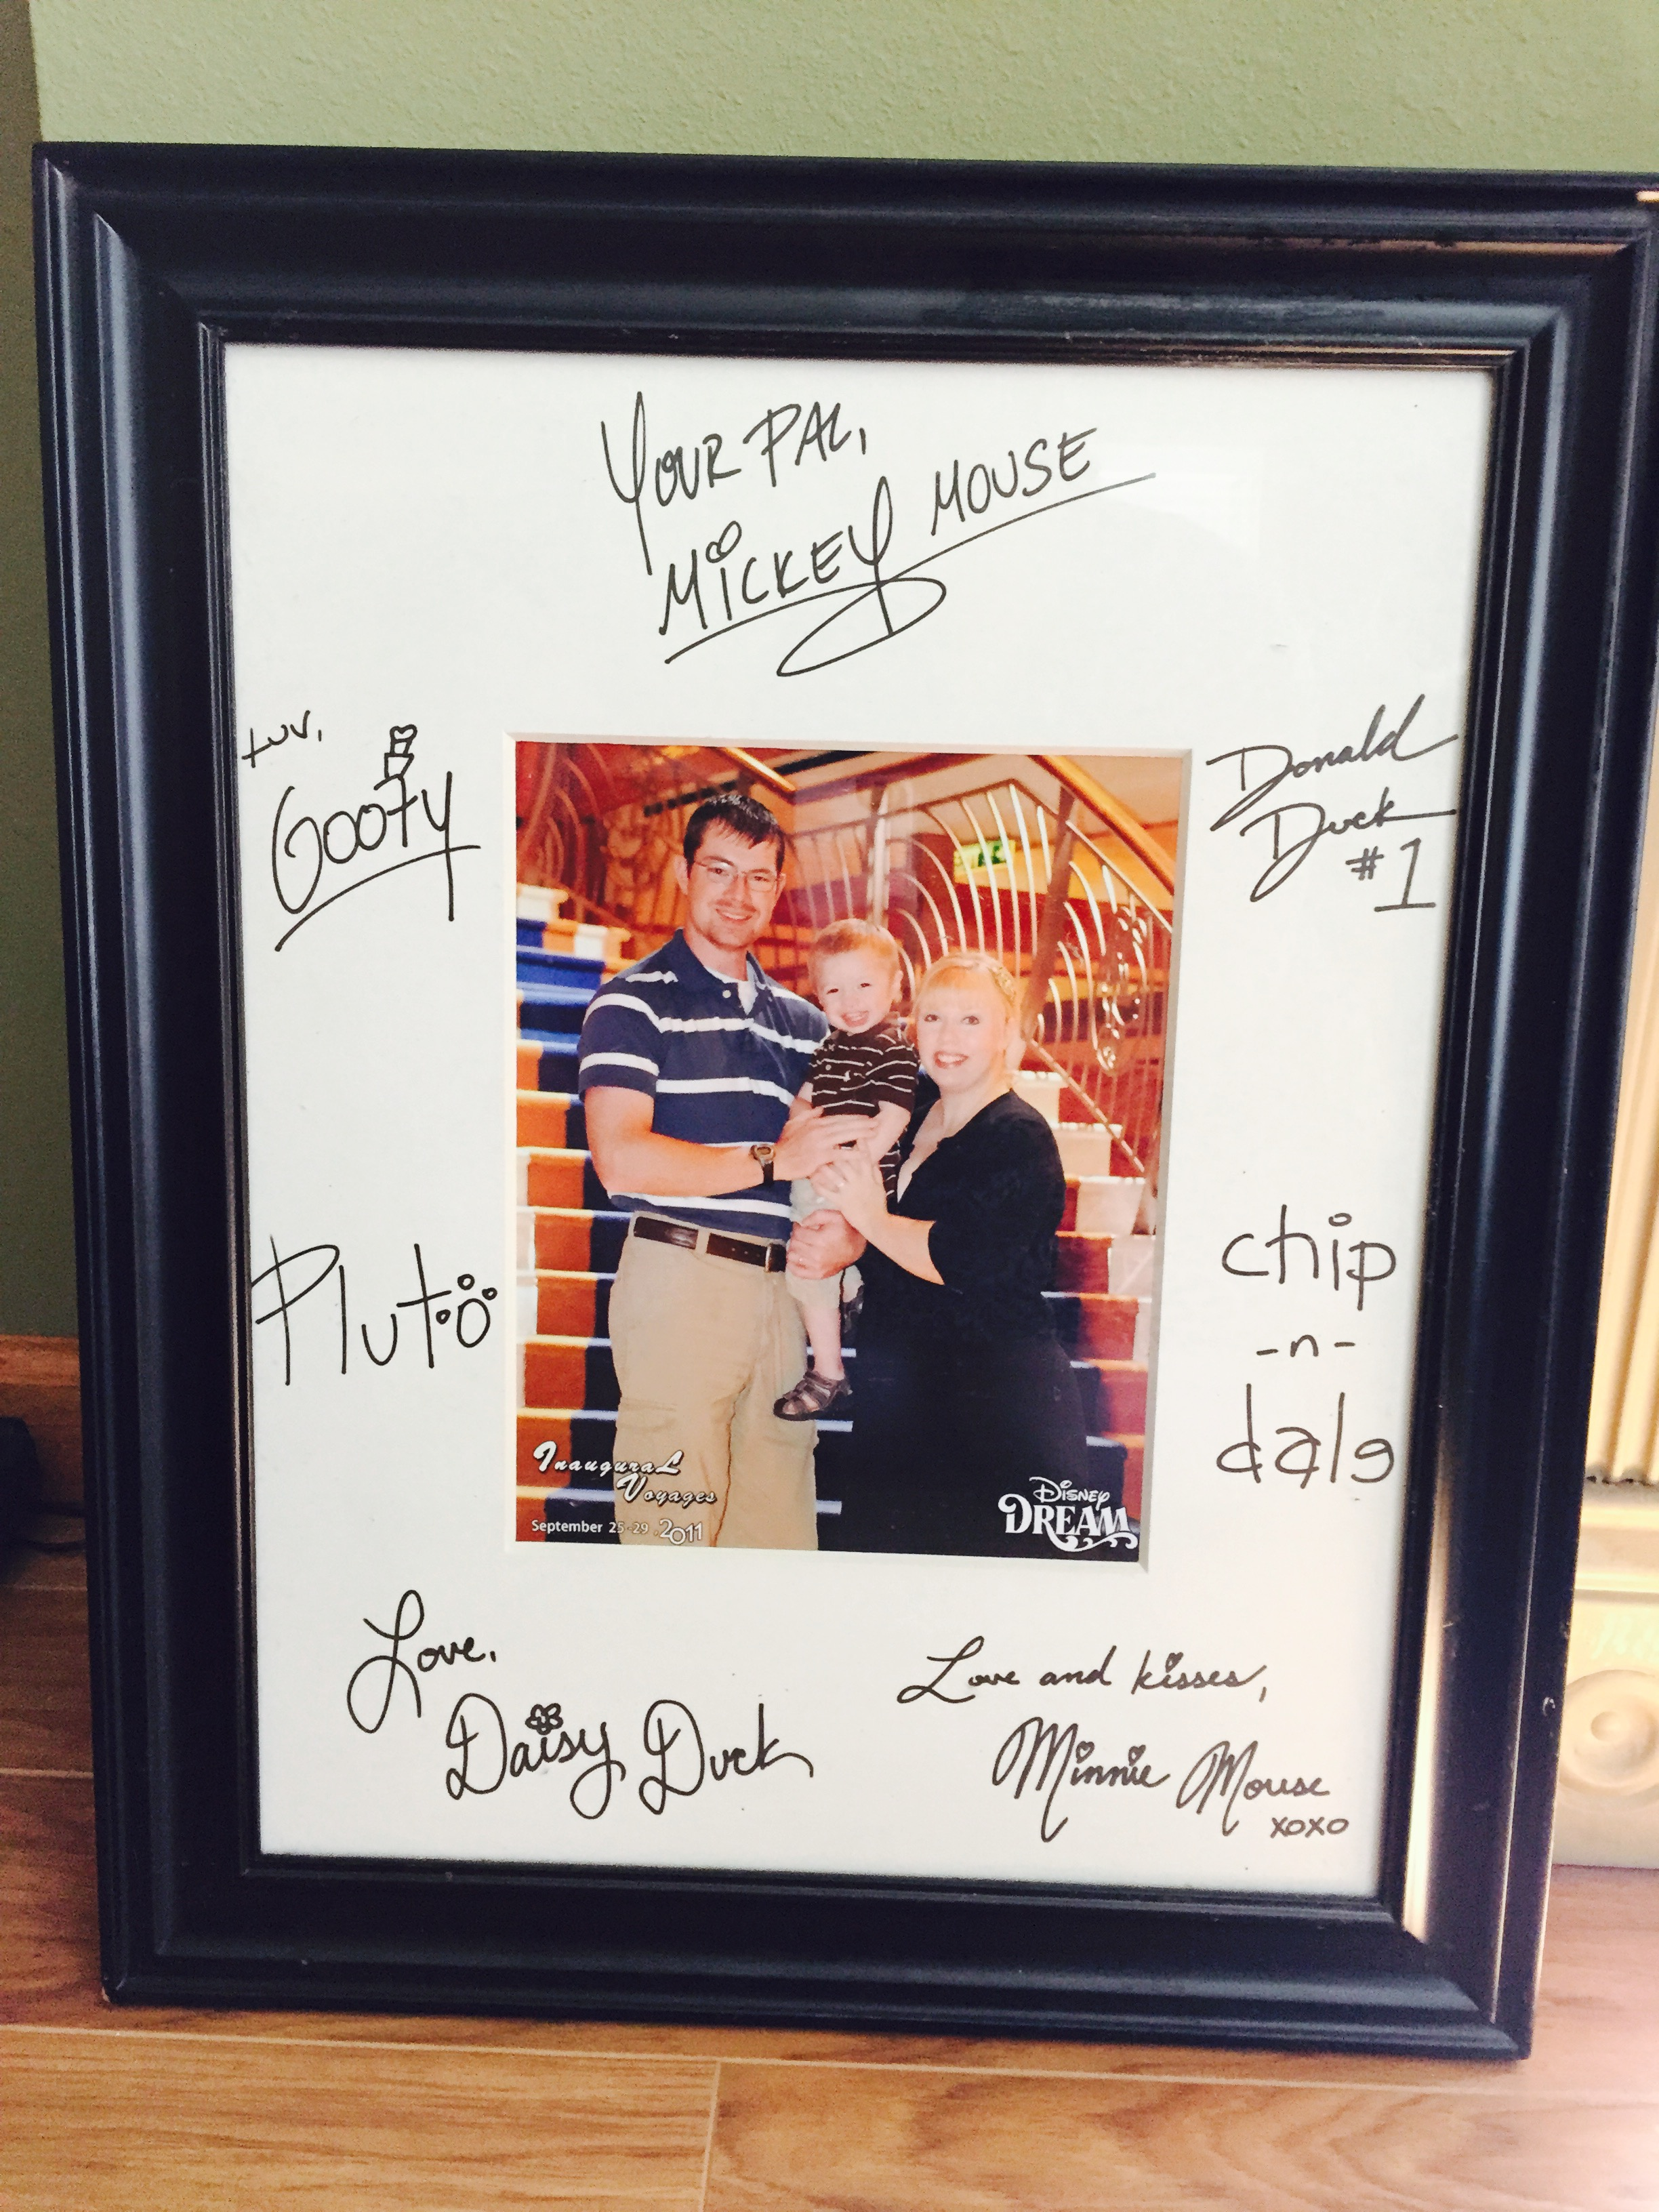 Tips for getting autographs on the disney cruise line tips from our favorite autographed item from the cruise jeuxipadfo Choice Image